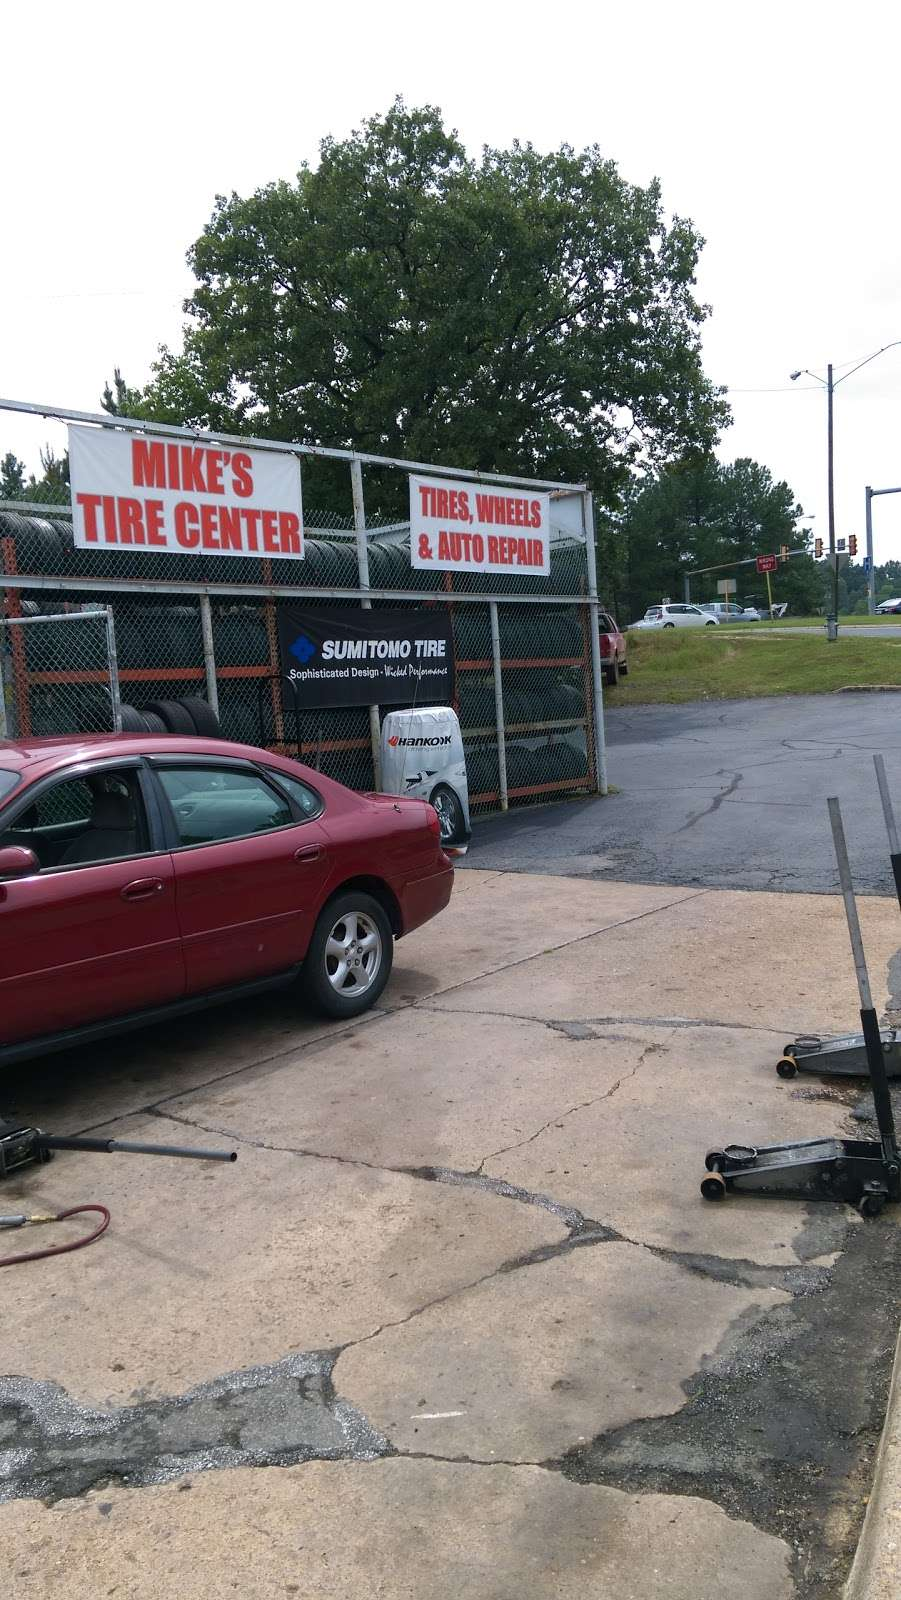 Mikes Tire Center - car repair  | Photo 3 of 10 | Address: 1217 1/2 Lafayette Blvd, Fredericksburg, VA 22401, USA | Phone: (540) 373-0779